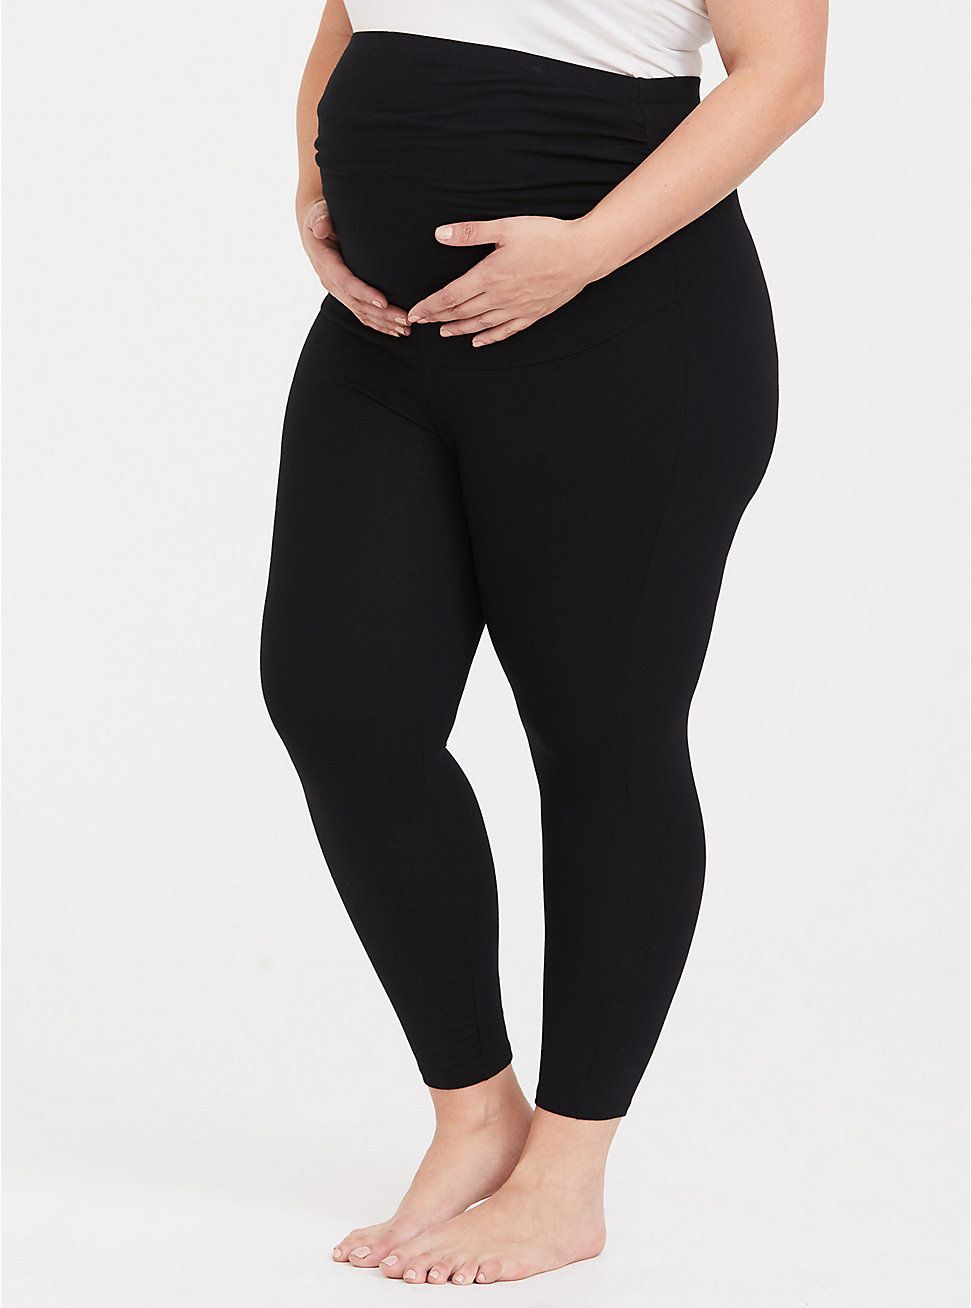 b166bfd1550d6 Black Crop Maternity Legging in 2019 | Maternity Wear | Maternity ...